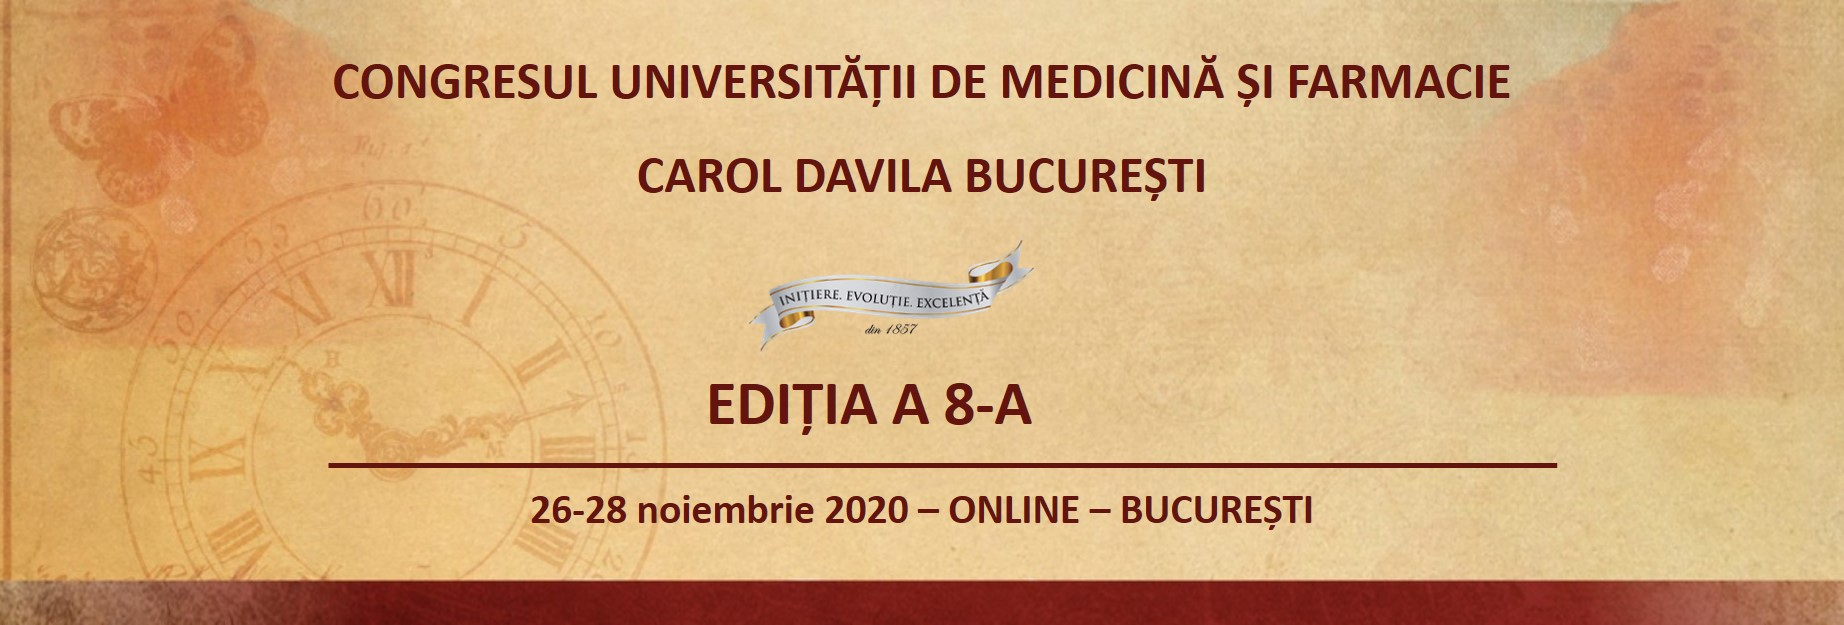 The Congress of the University of Medicine and Pharmacy Carol Davila Bucharest